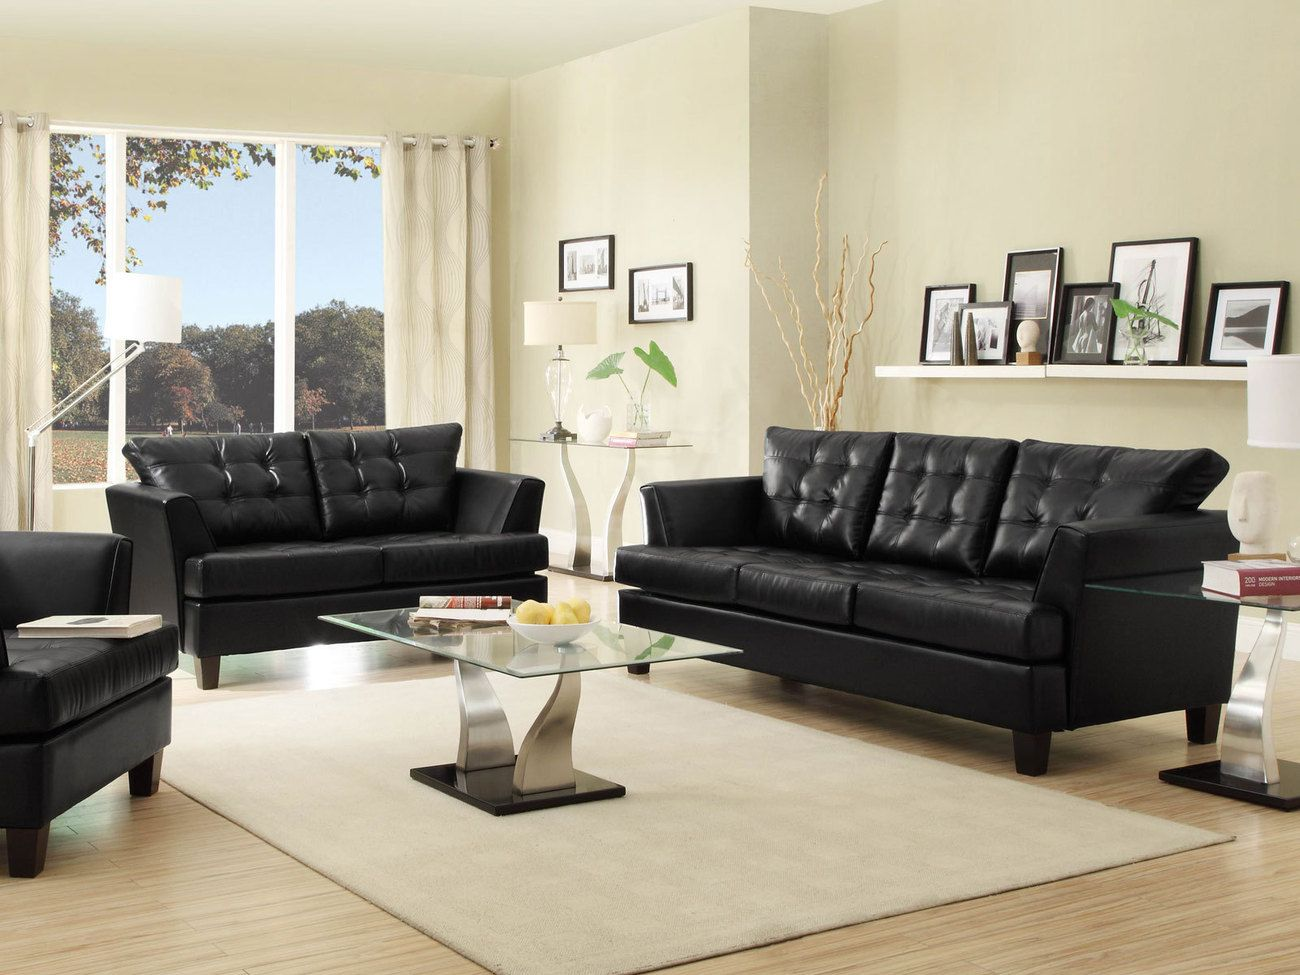 iris modern black faux leather sofa couch u0026 loveseat set living room furniture